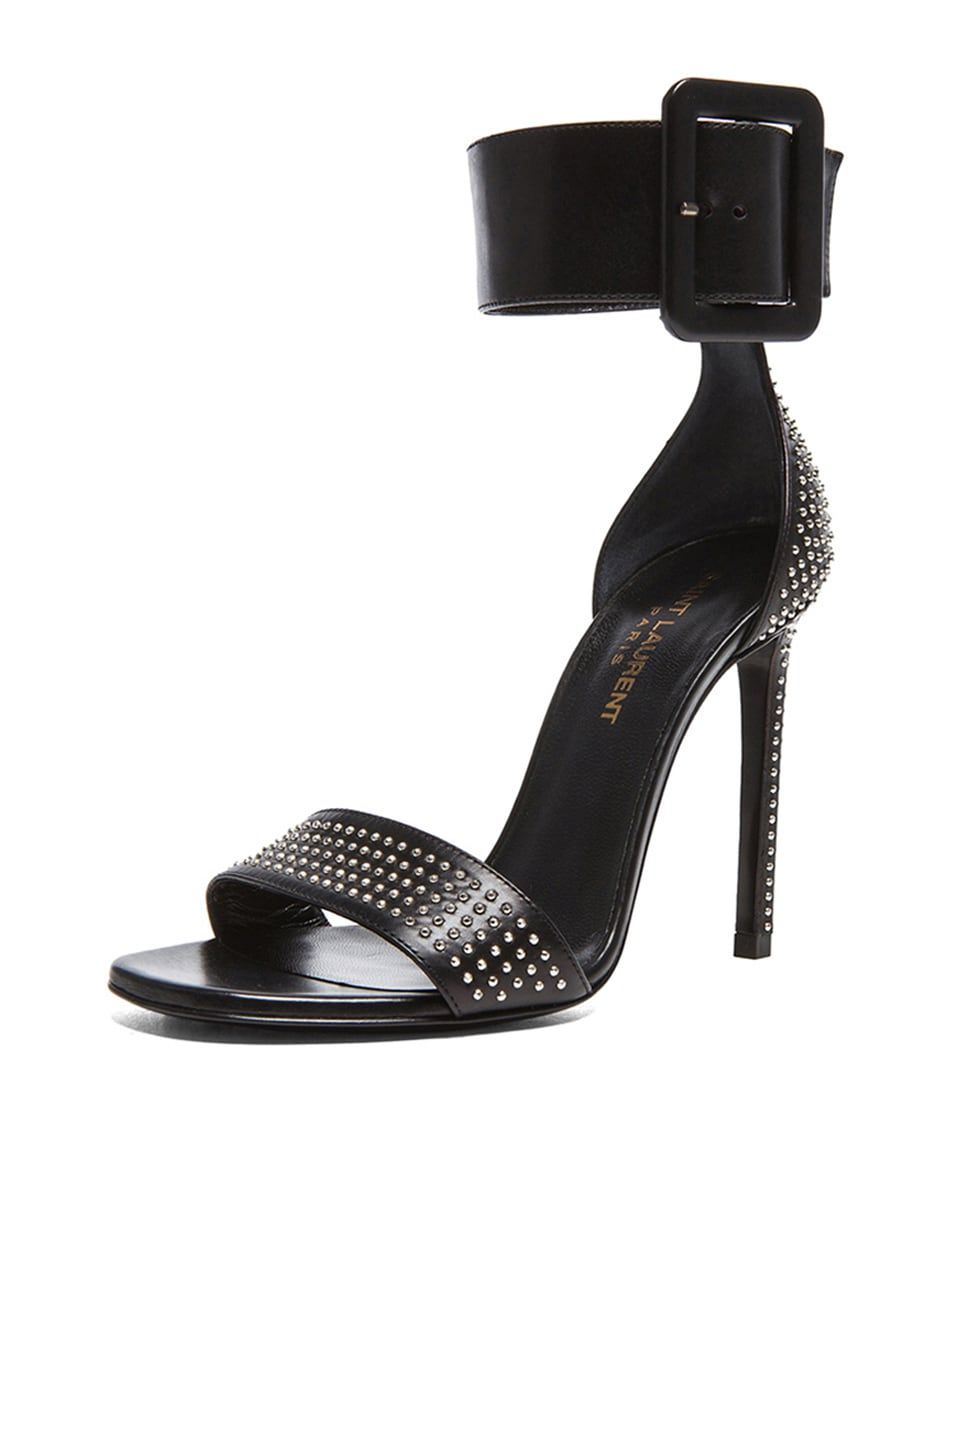 Image 2 of Saint Laurent Jane Studded Calfskin Leather Ankle Strap Heels in Black & Palladium